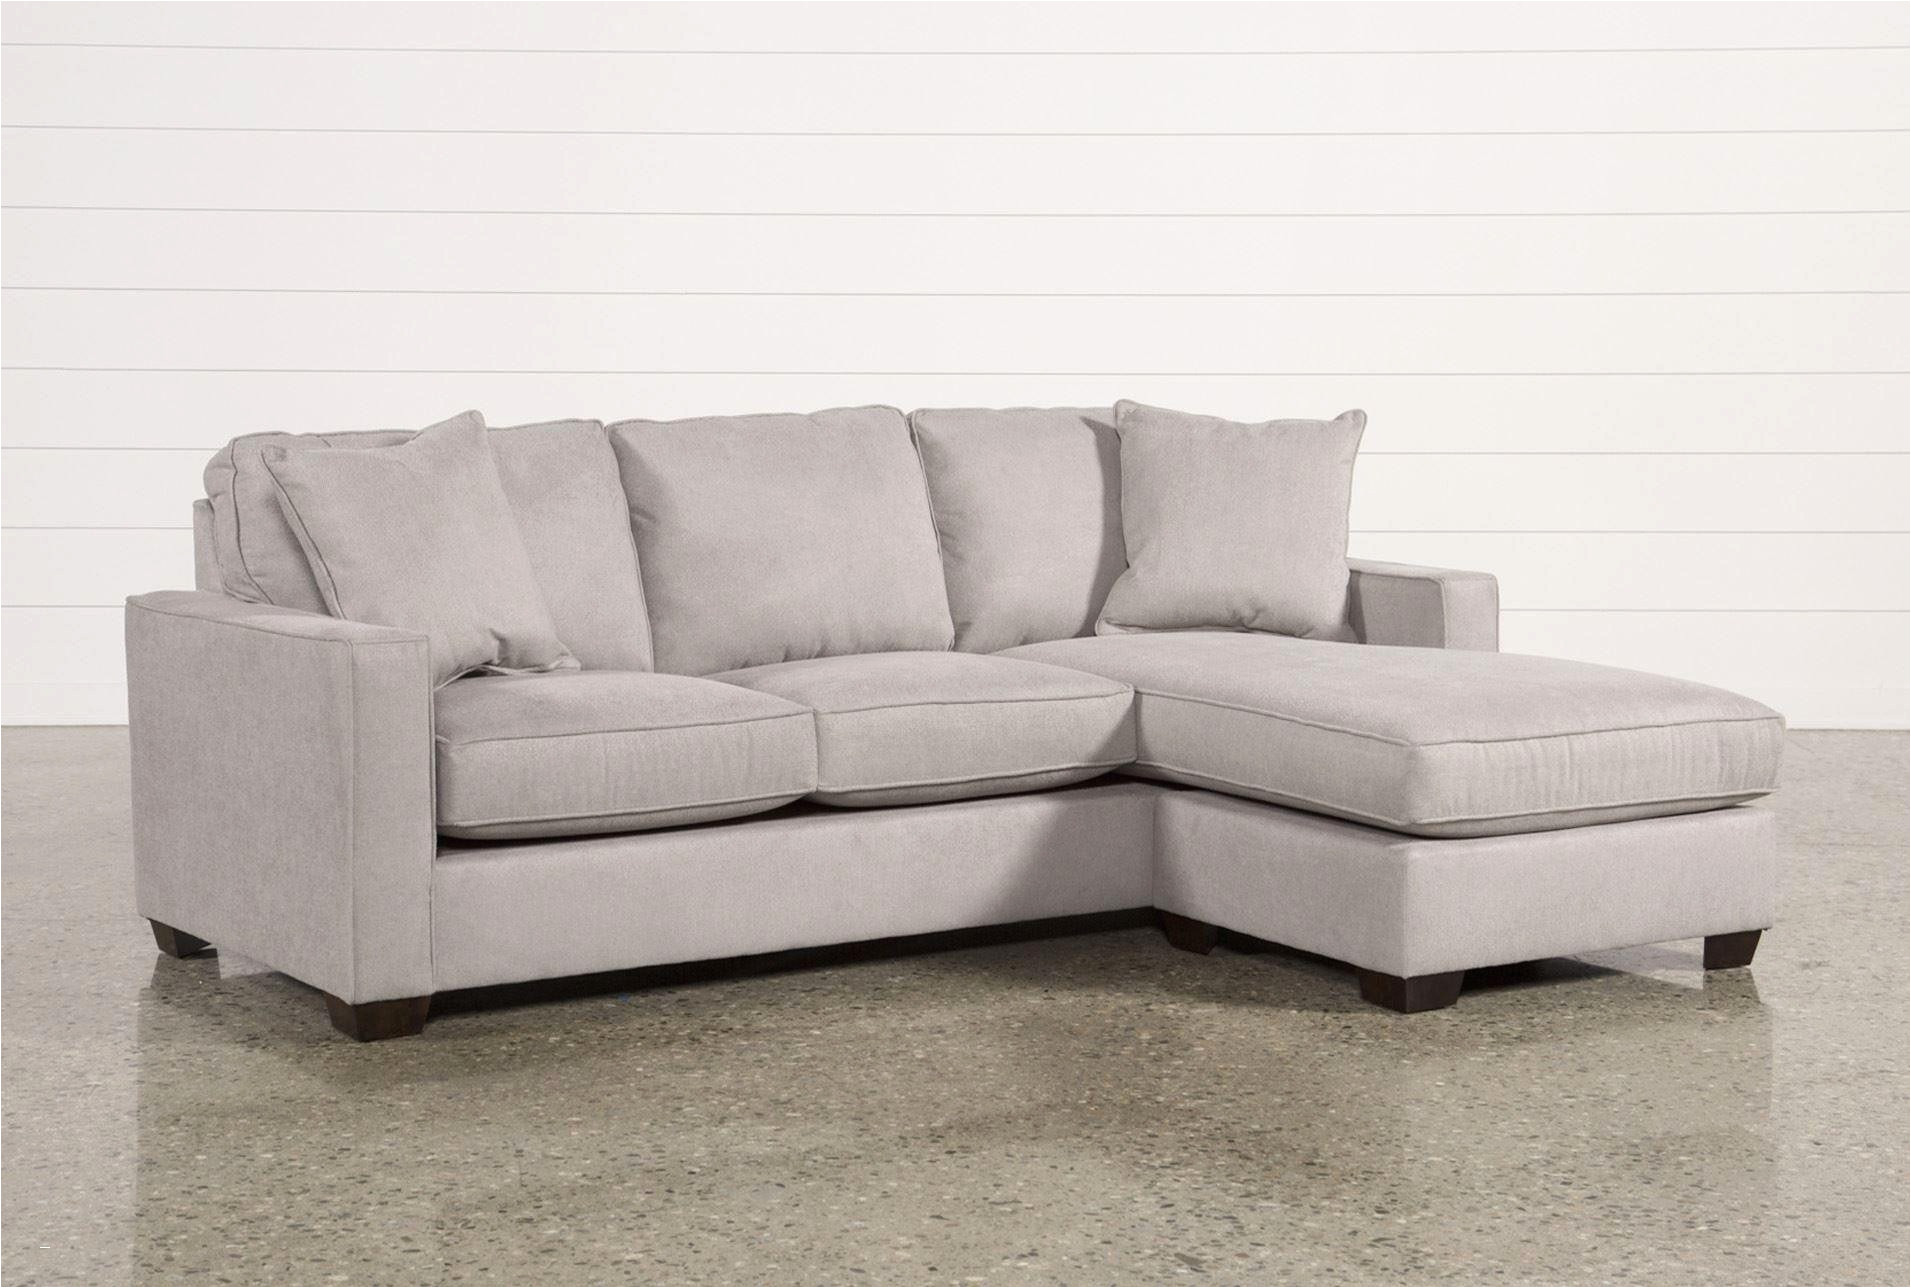 Ikea Friheten Sleeper sofa Review Ikea Schlafsofa Friheten Luxus 50 Beautiful Ikea Friheten sofa Bed